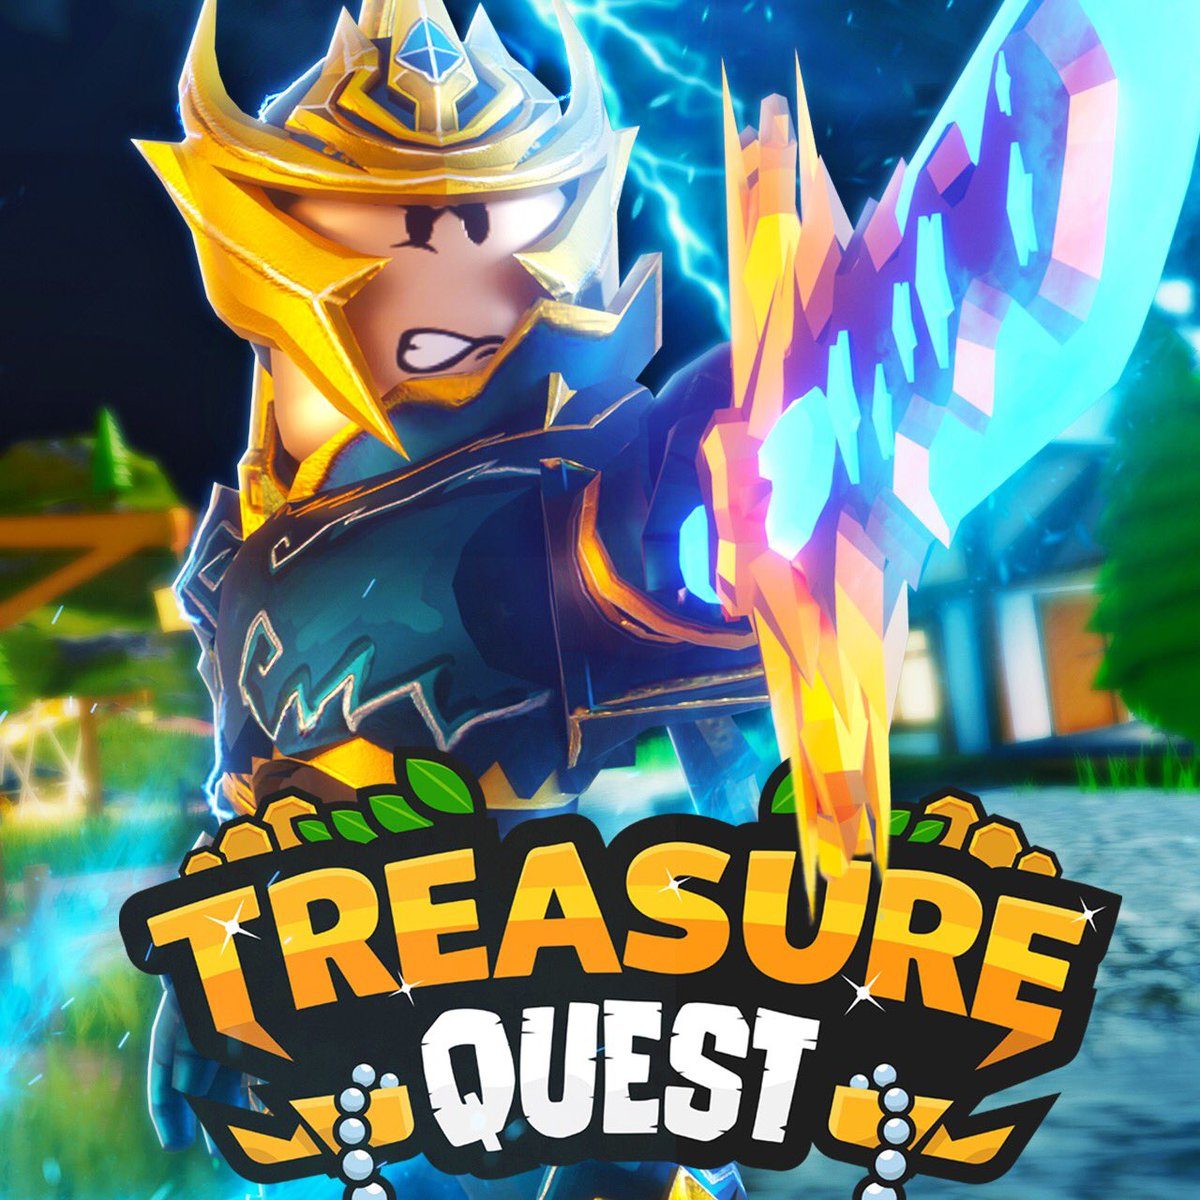 I5k On Twitter Icon Commission For Nosniyrblx S Treasure Quest